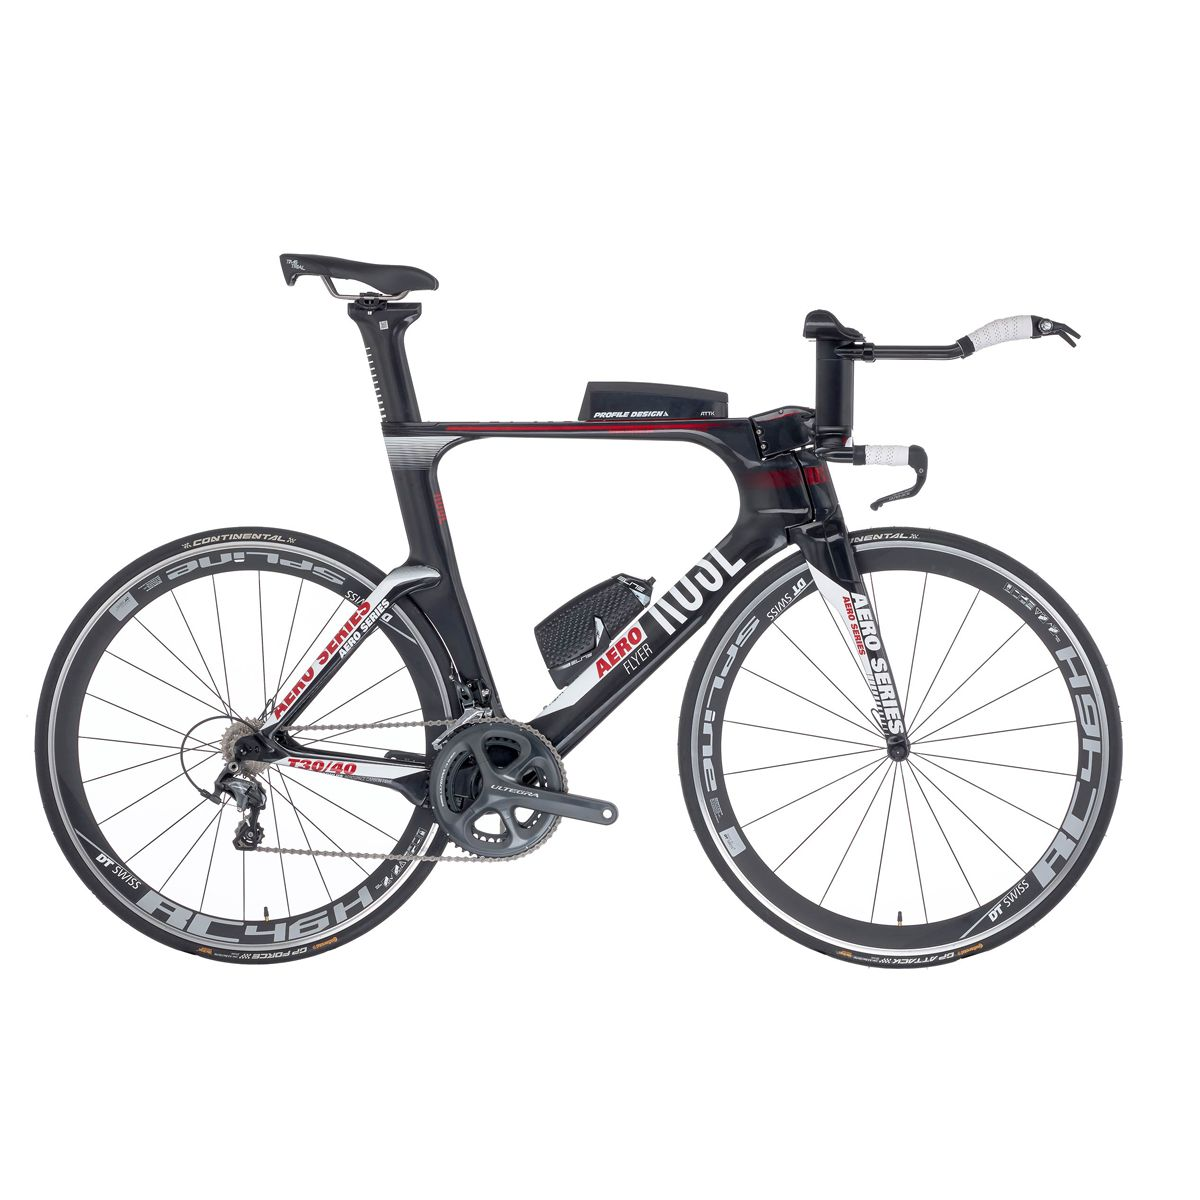 ROSE Aero Flyer 3000 showroom bike | Tri/time trial